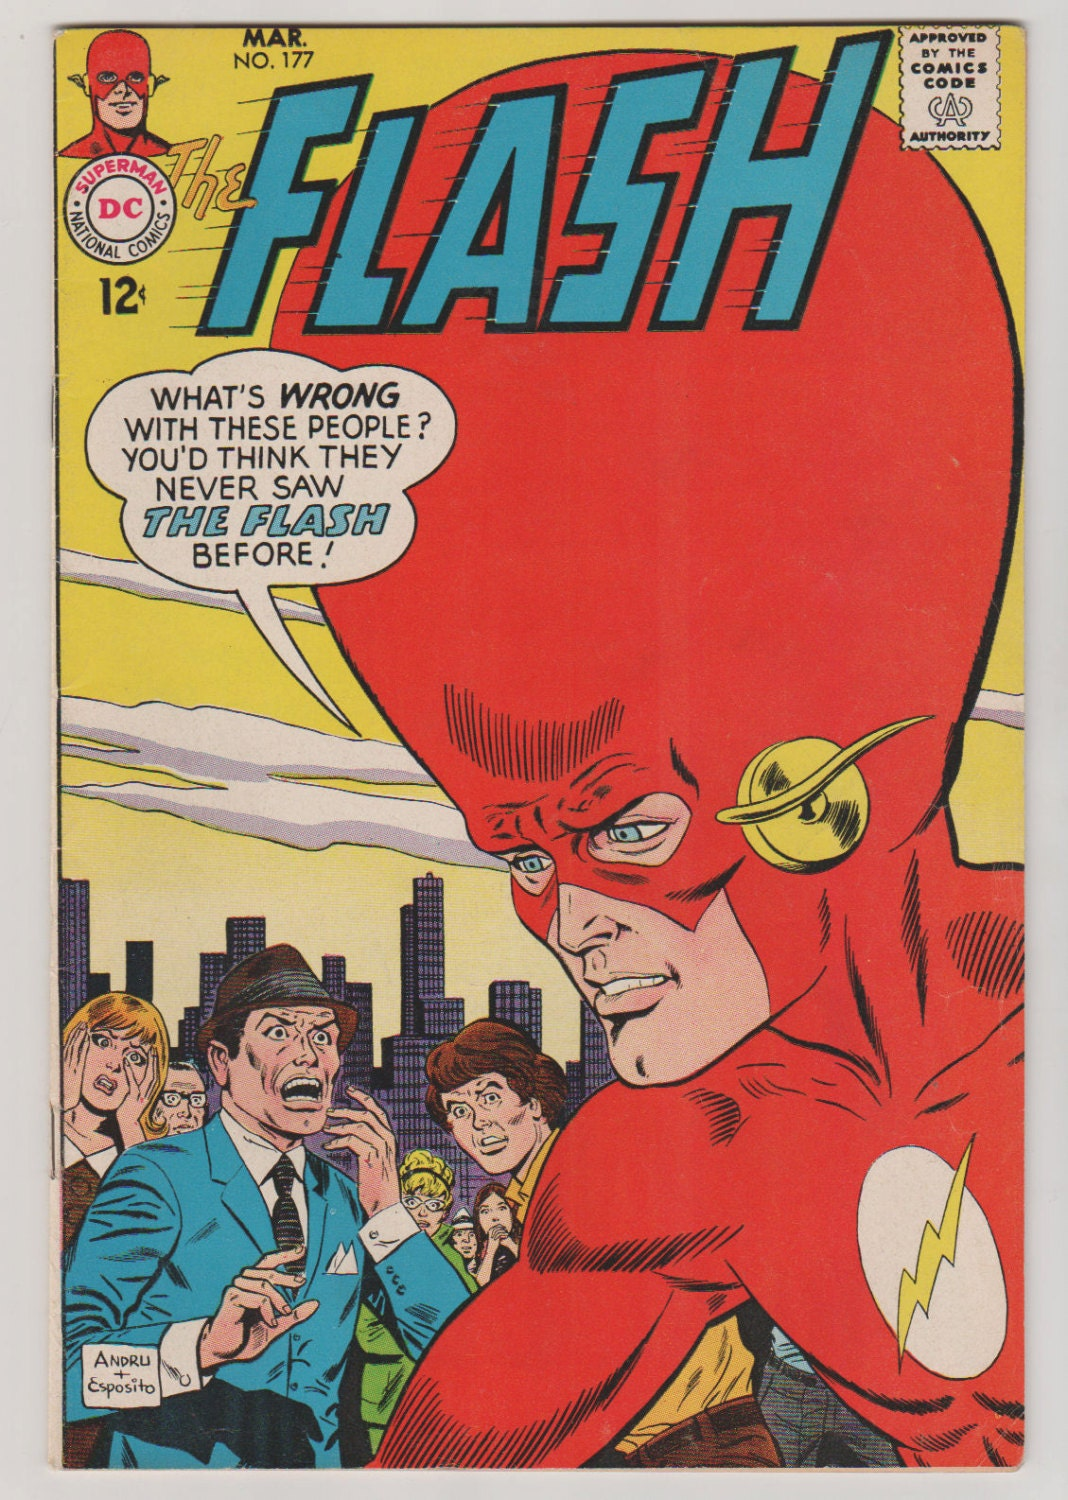 Flash Vol 1 177 Silver Age Comic Book. VF 8.0. March | Etsy